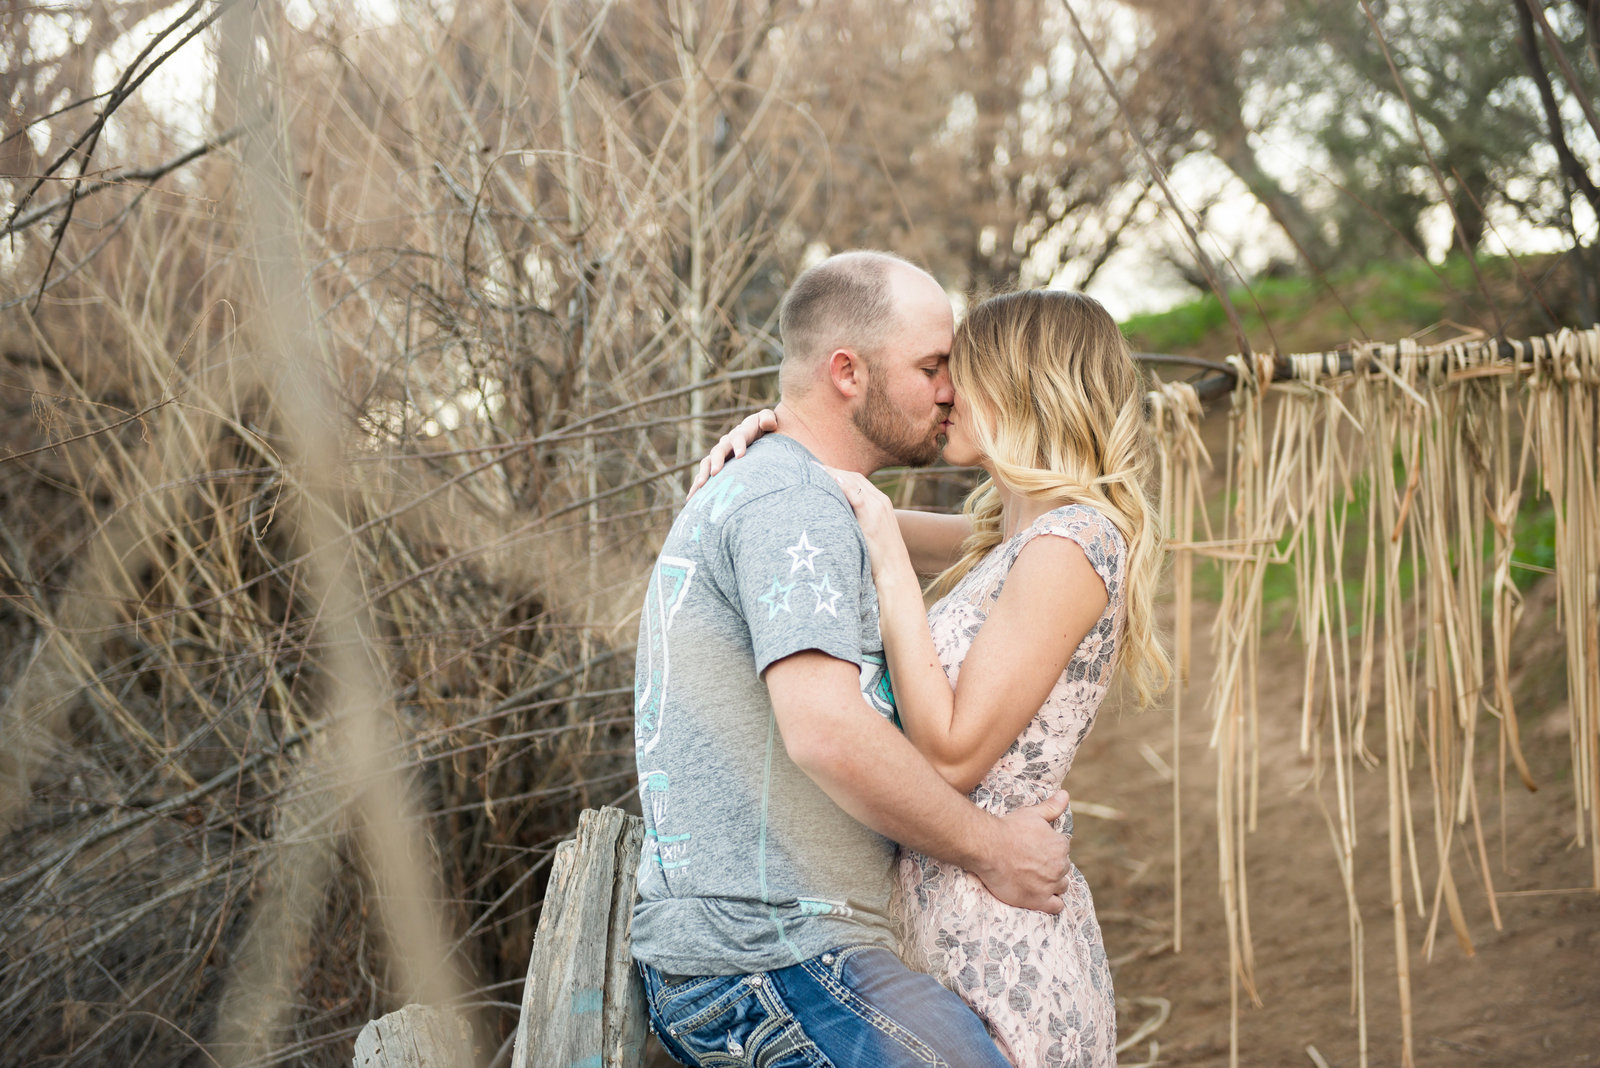 Cody and Britt Social Media_012_January 30, 2016